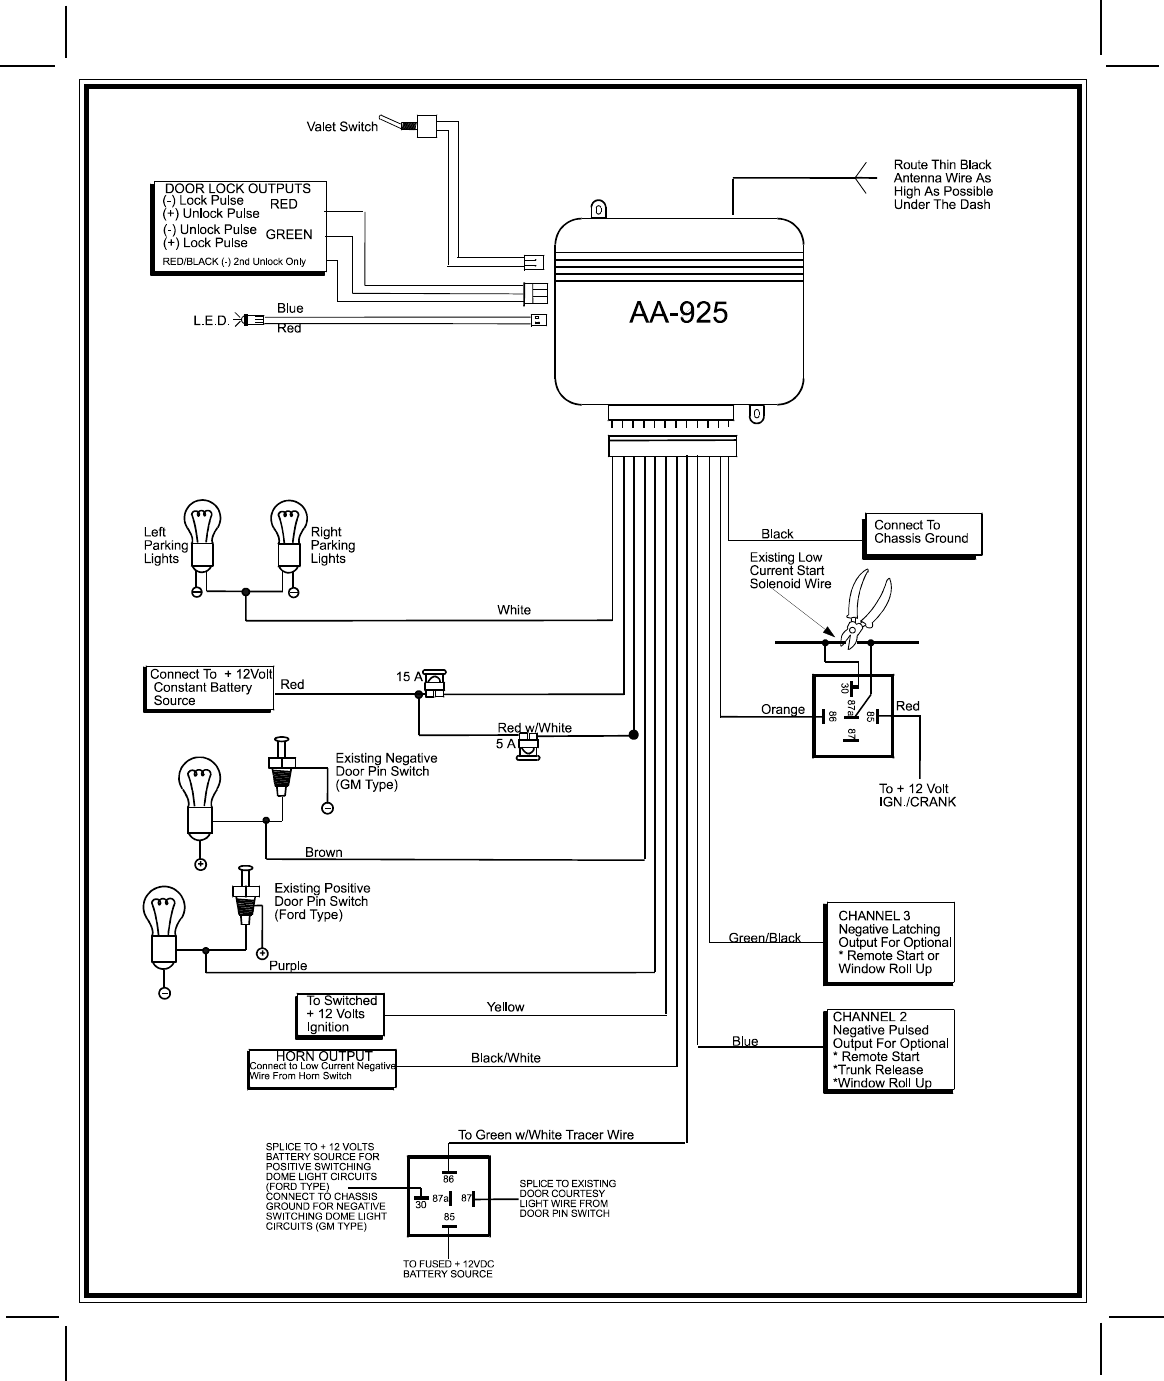 728e5939 5a52 46a4 ba14 2e72baef2843 bg8 wiring diagram for prestige car alarm readingrat net dei alarm wiring diagram at sewacar.co